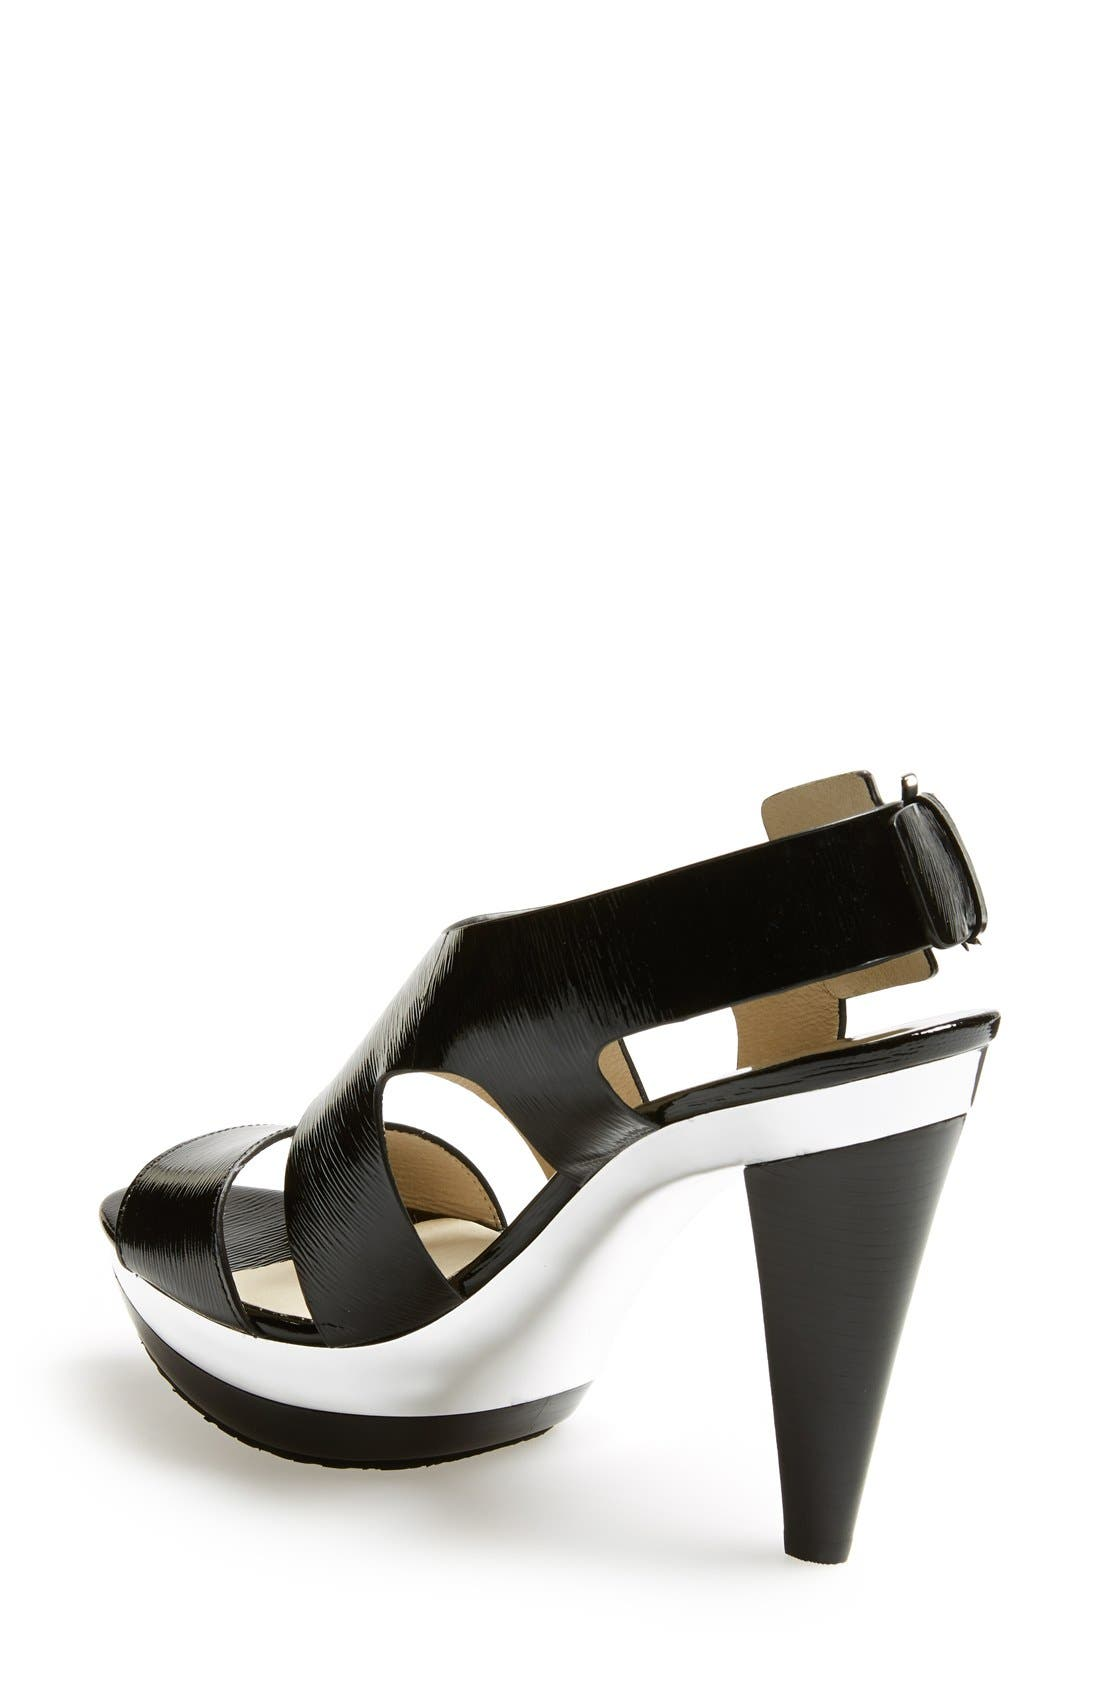 Alternate Image 2  - MICHAEL Michael Kors 'Carla' Saffiano Patent Leather Sandal (Women)